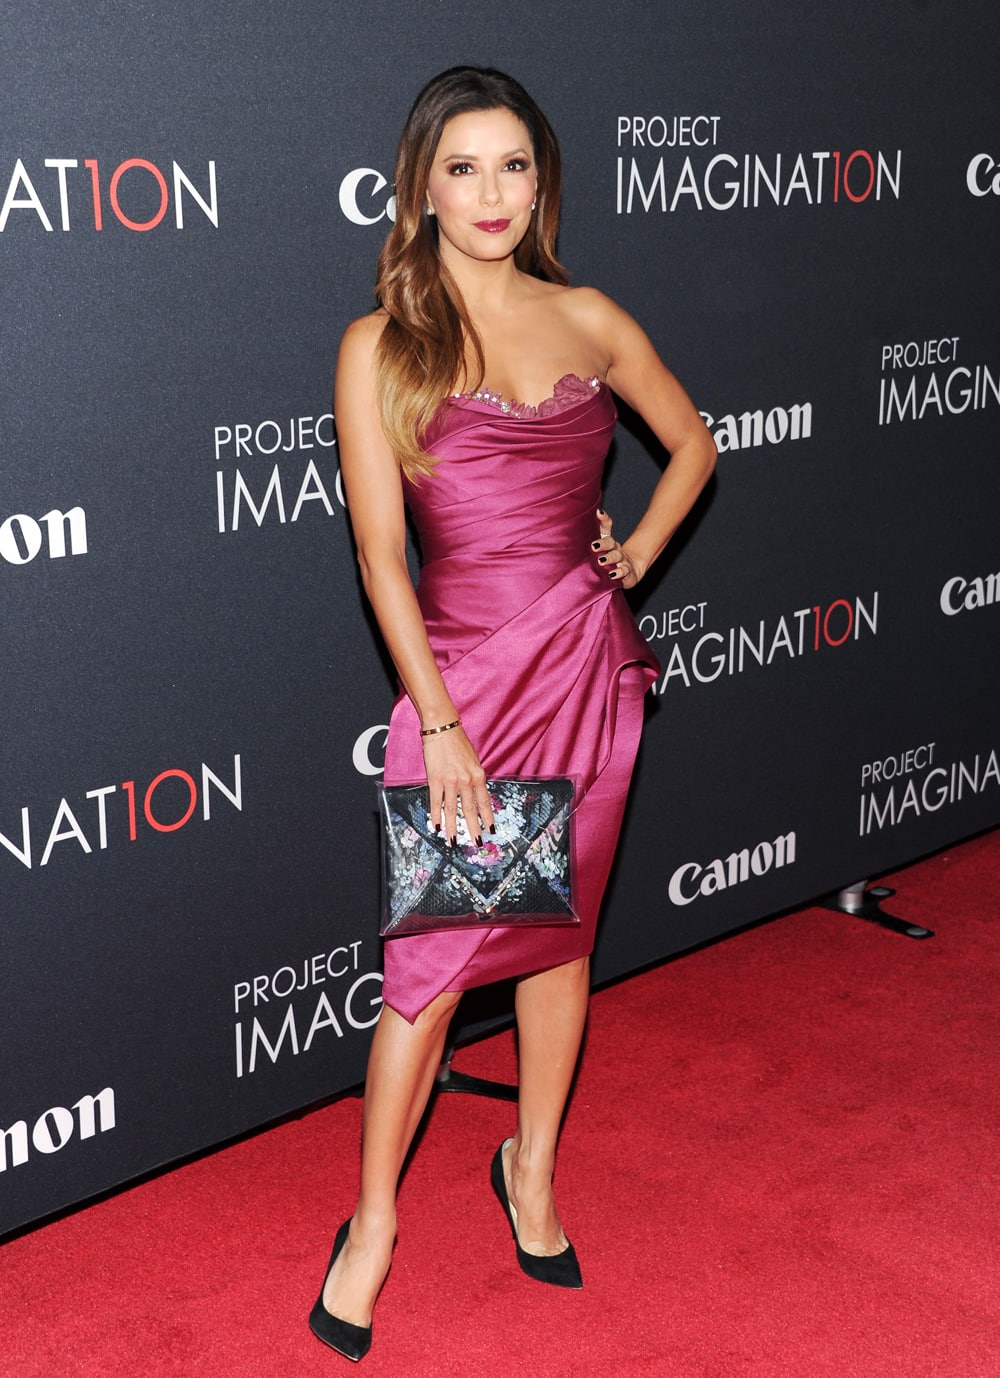 Actress Eva Longoria attends the global premiere of Canon's